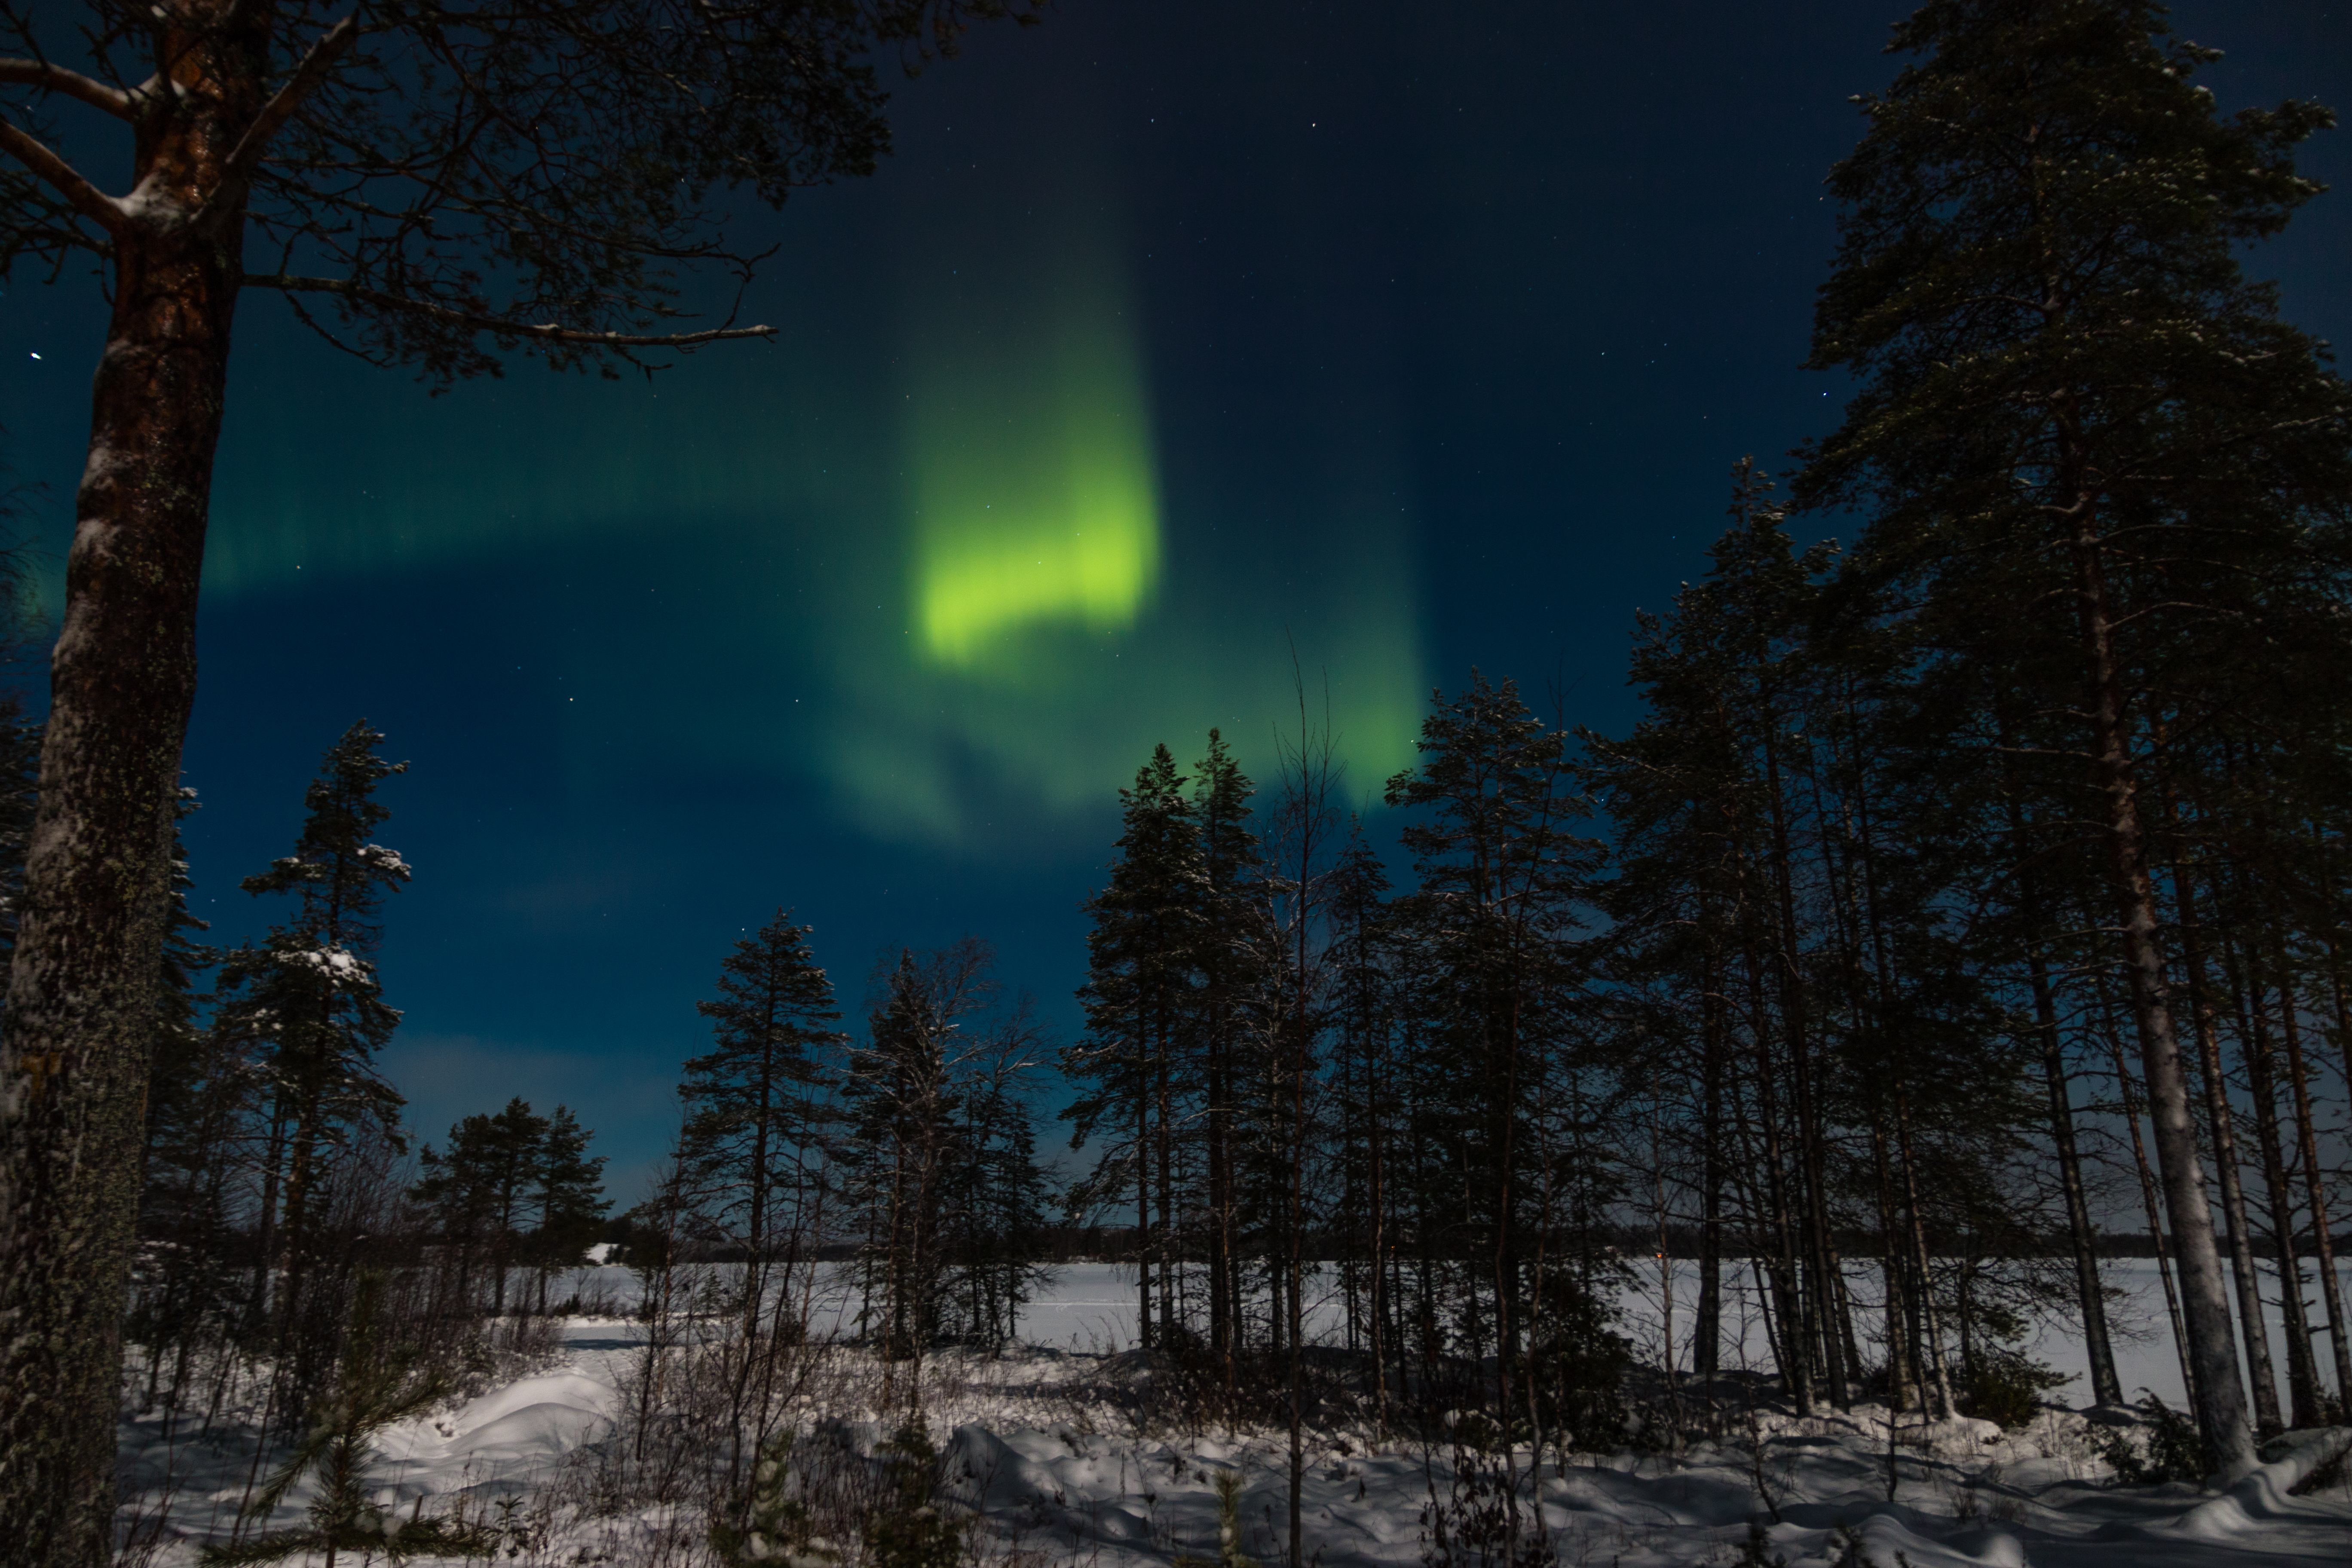 127726 download wallpaper Sky, Winter, Nature, Trees, Night, Forest, Northern Lights, Aurora Borealis, Aurora screensavers and pictures for free